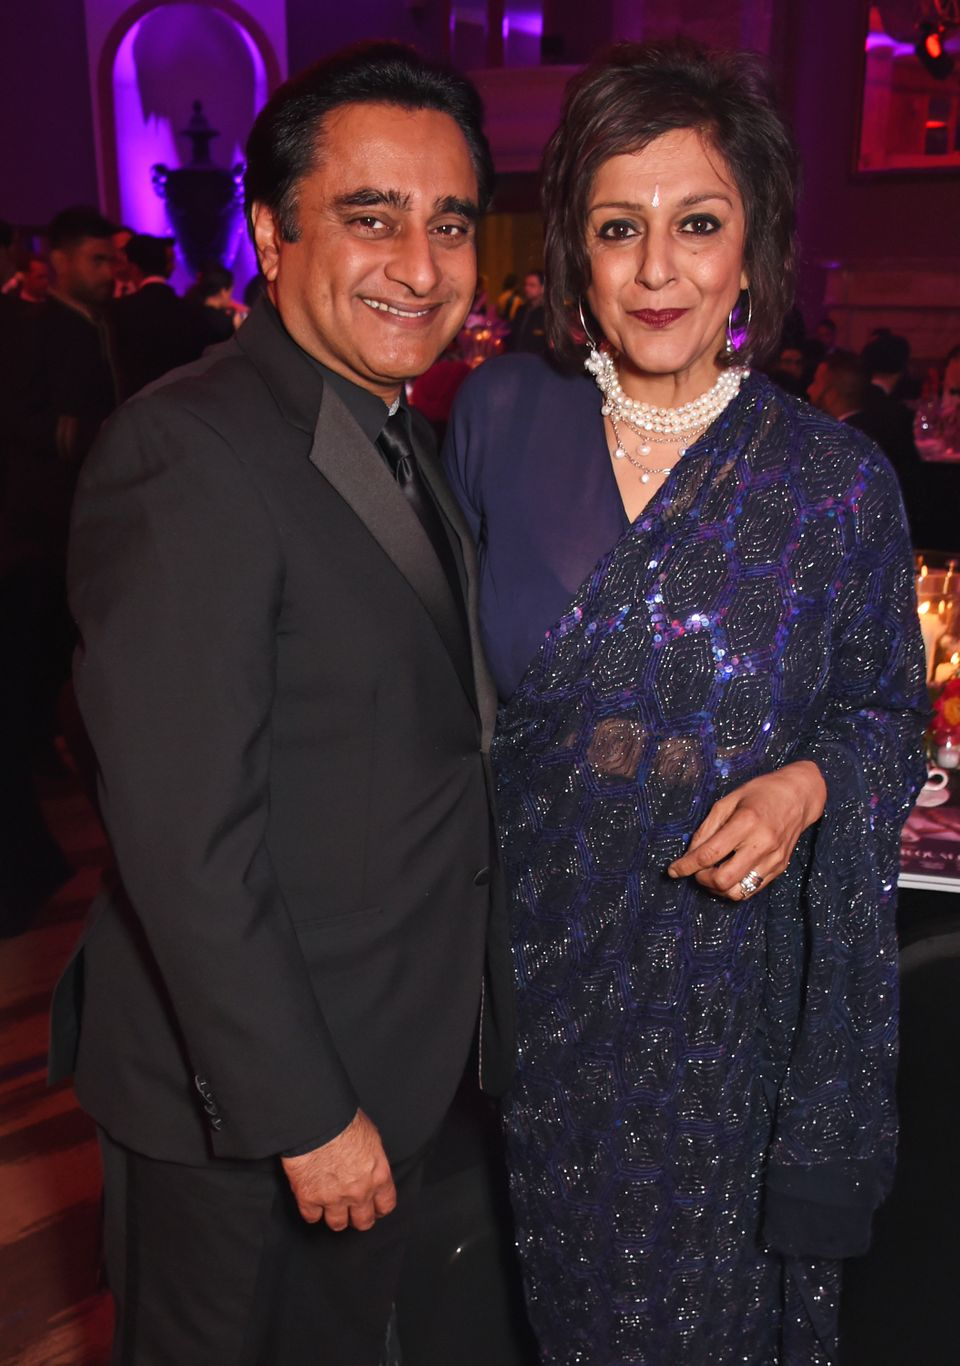 Sanjeev and Meera pictured at the British Asian Awards in